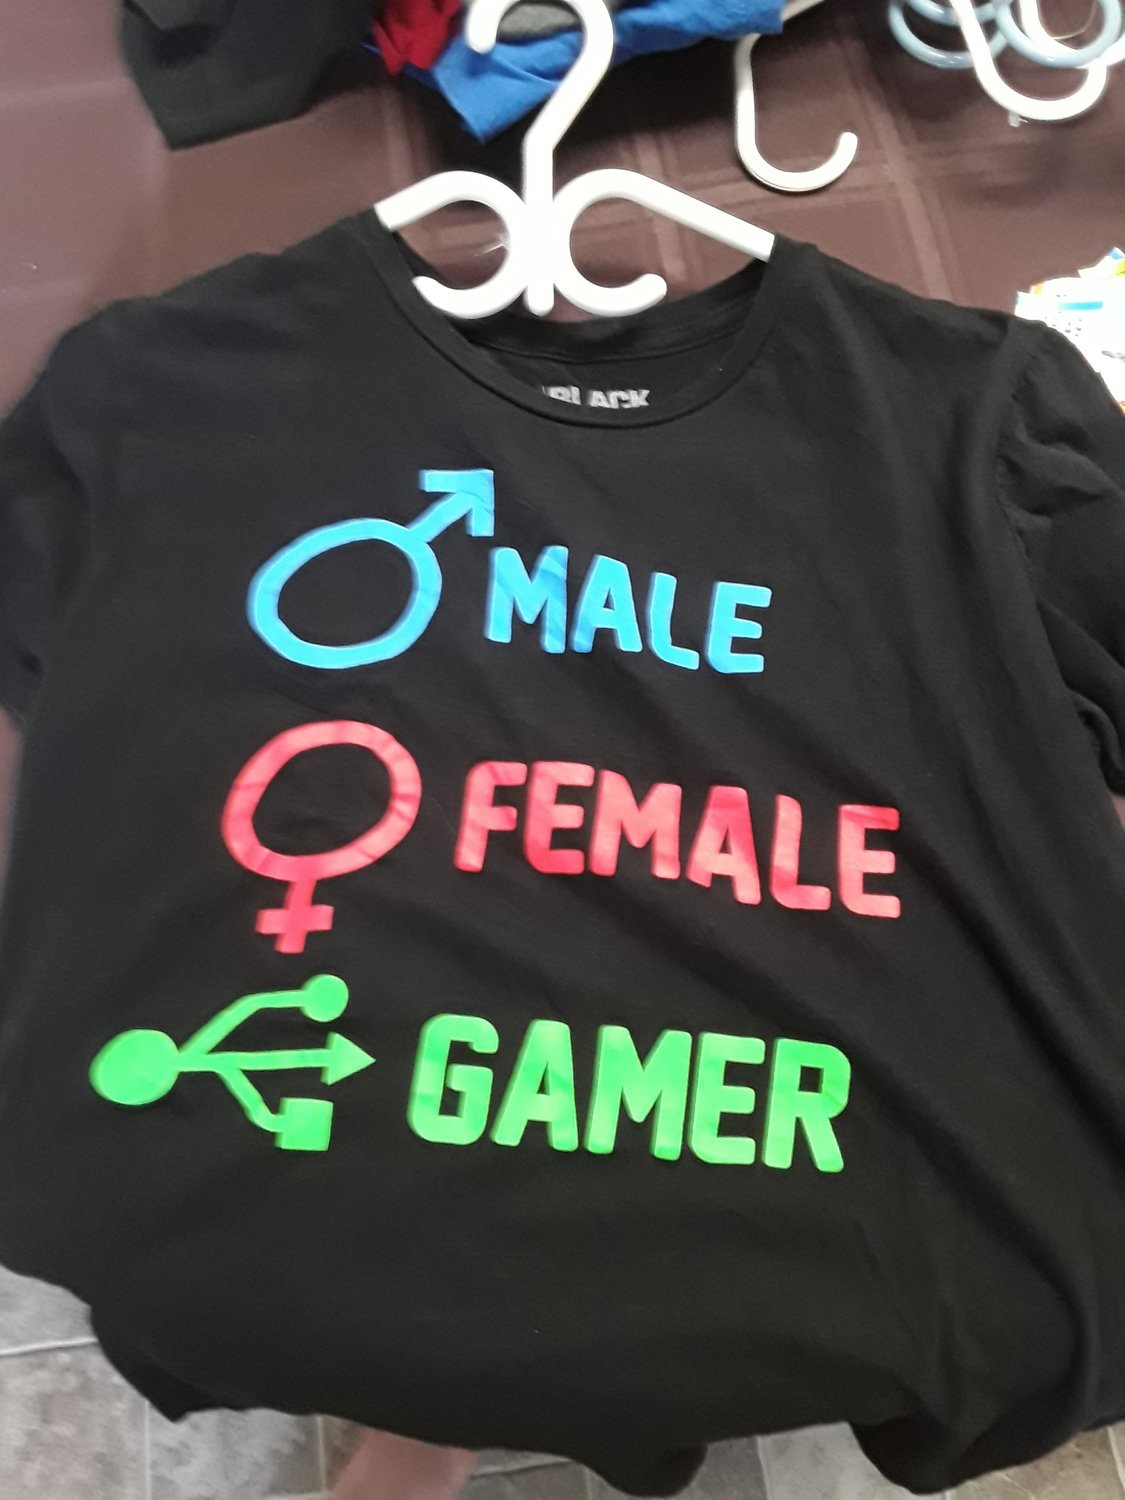 Male, Female, Gamer